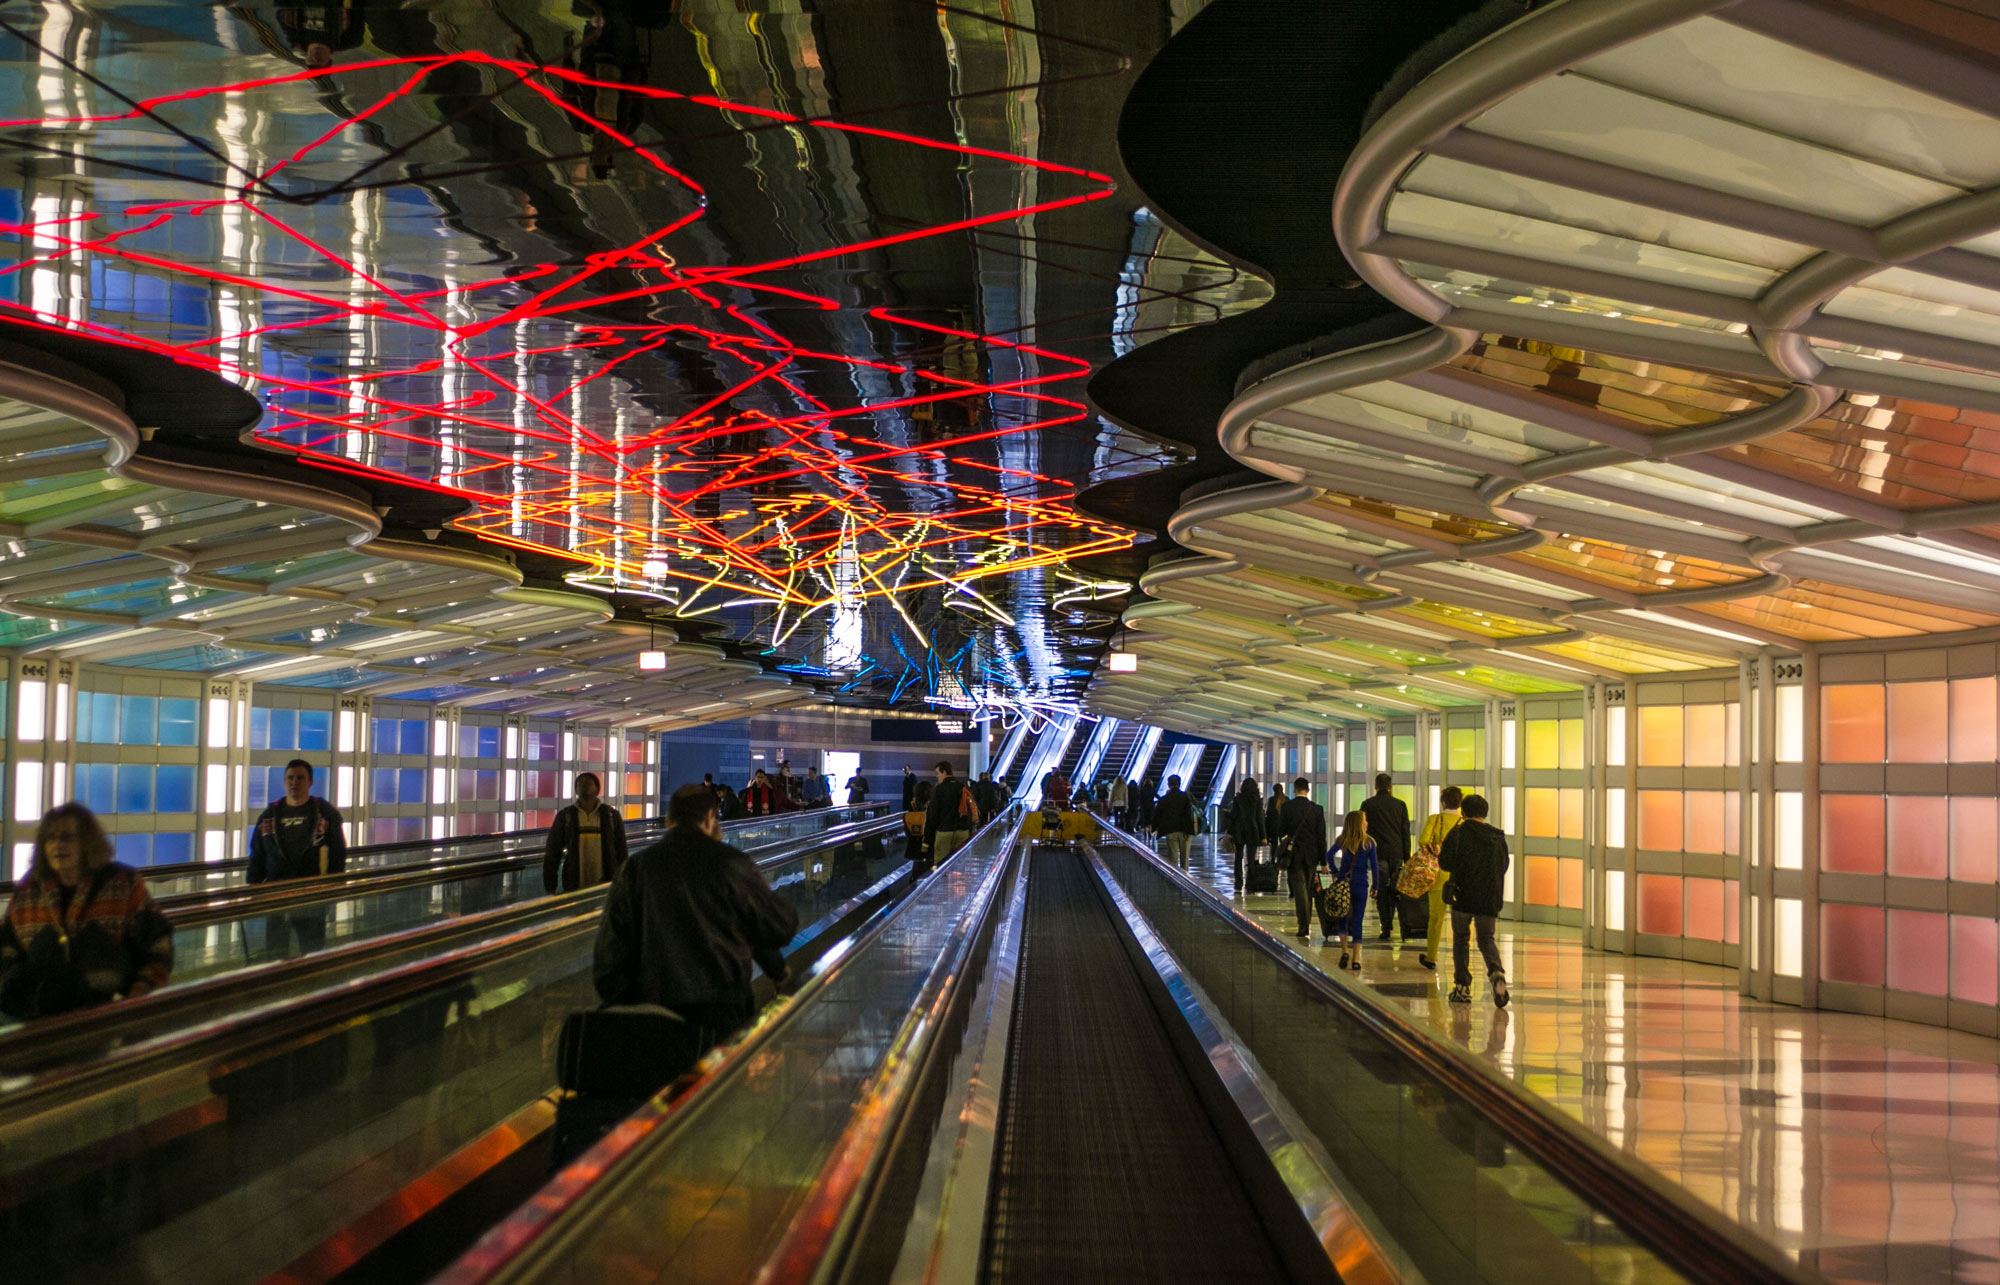 Exploring Chicago's O'Hare Airport